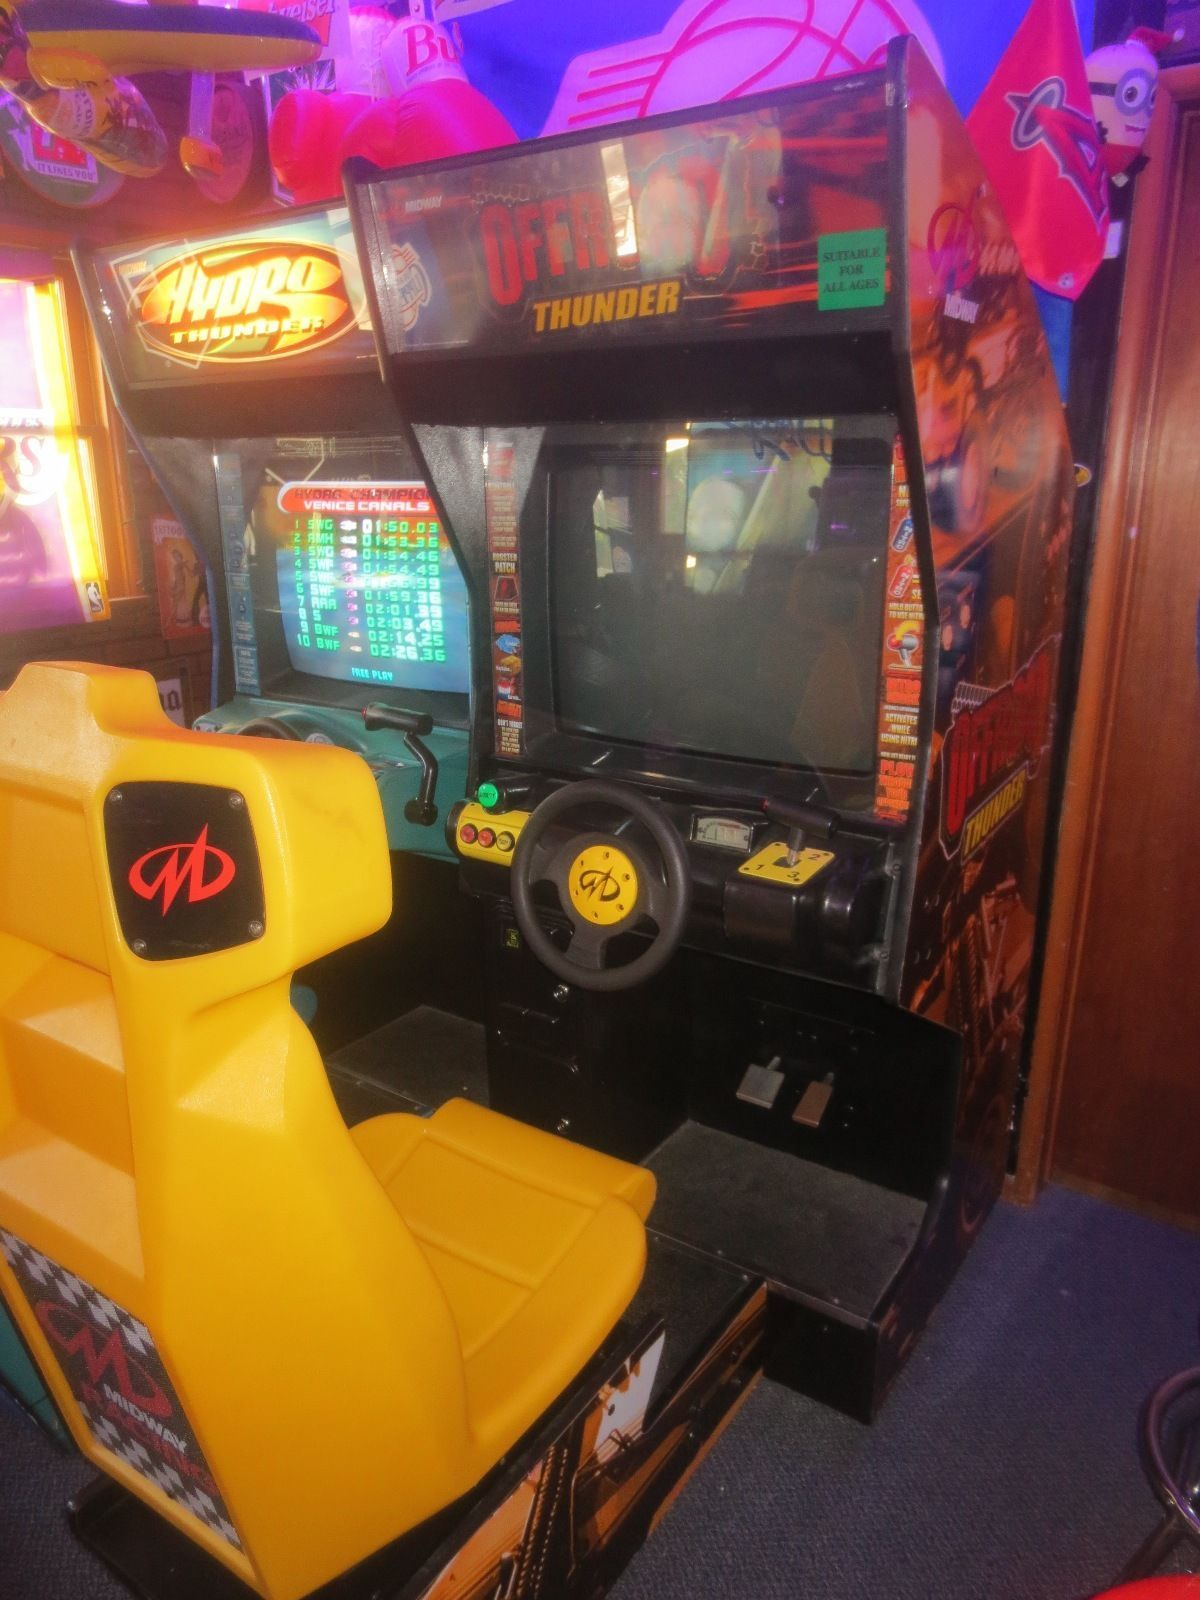 Midway Offroad Thunder Arcade Cabinet | eBay